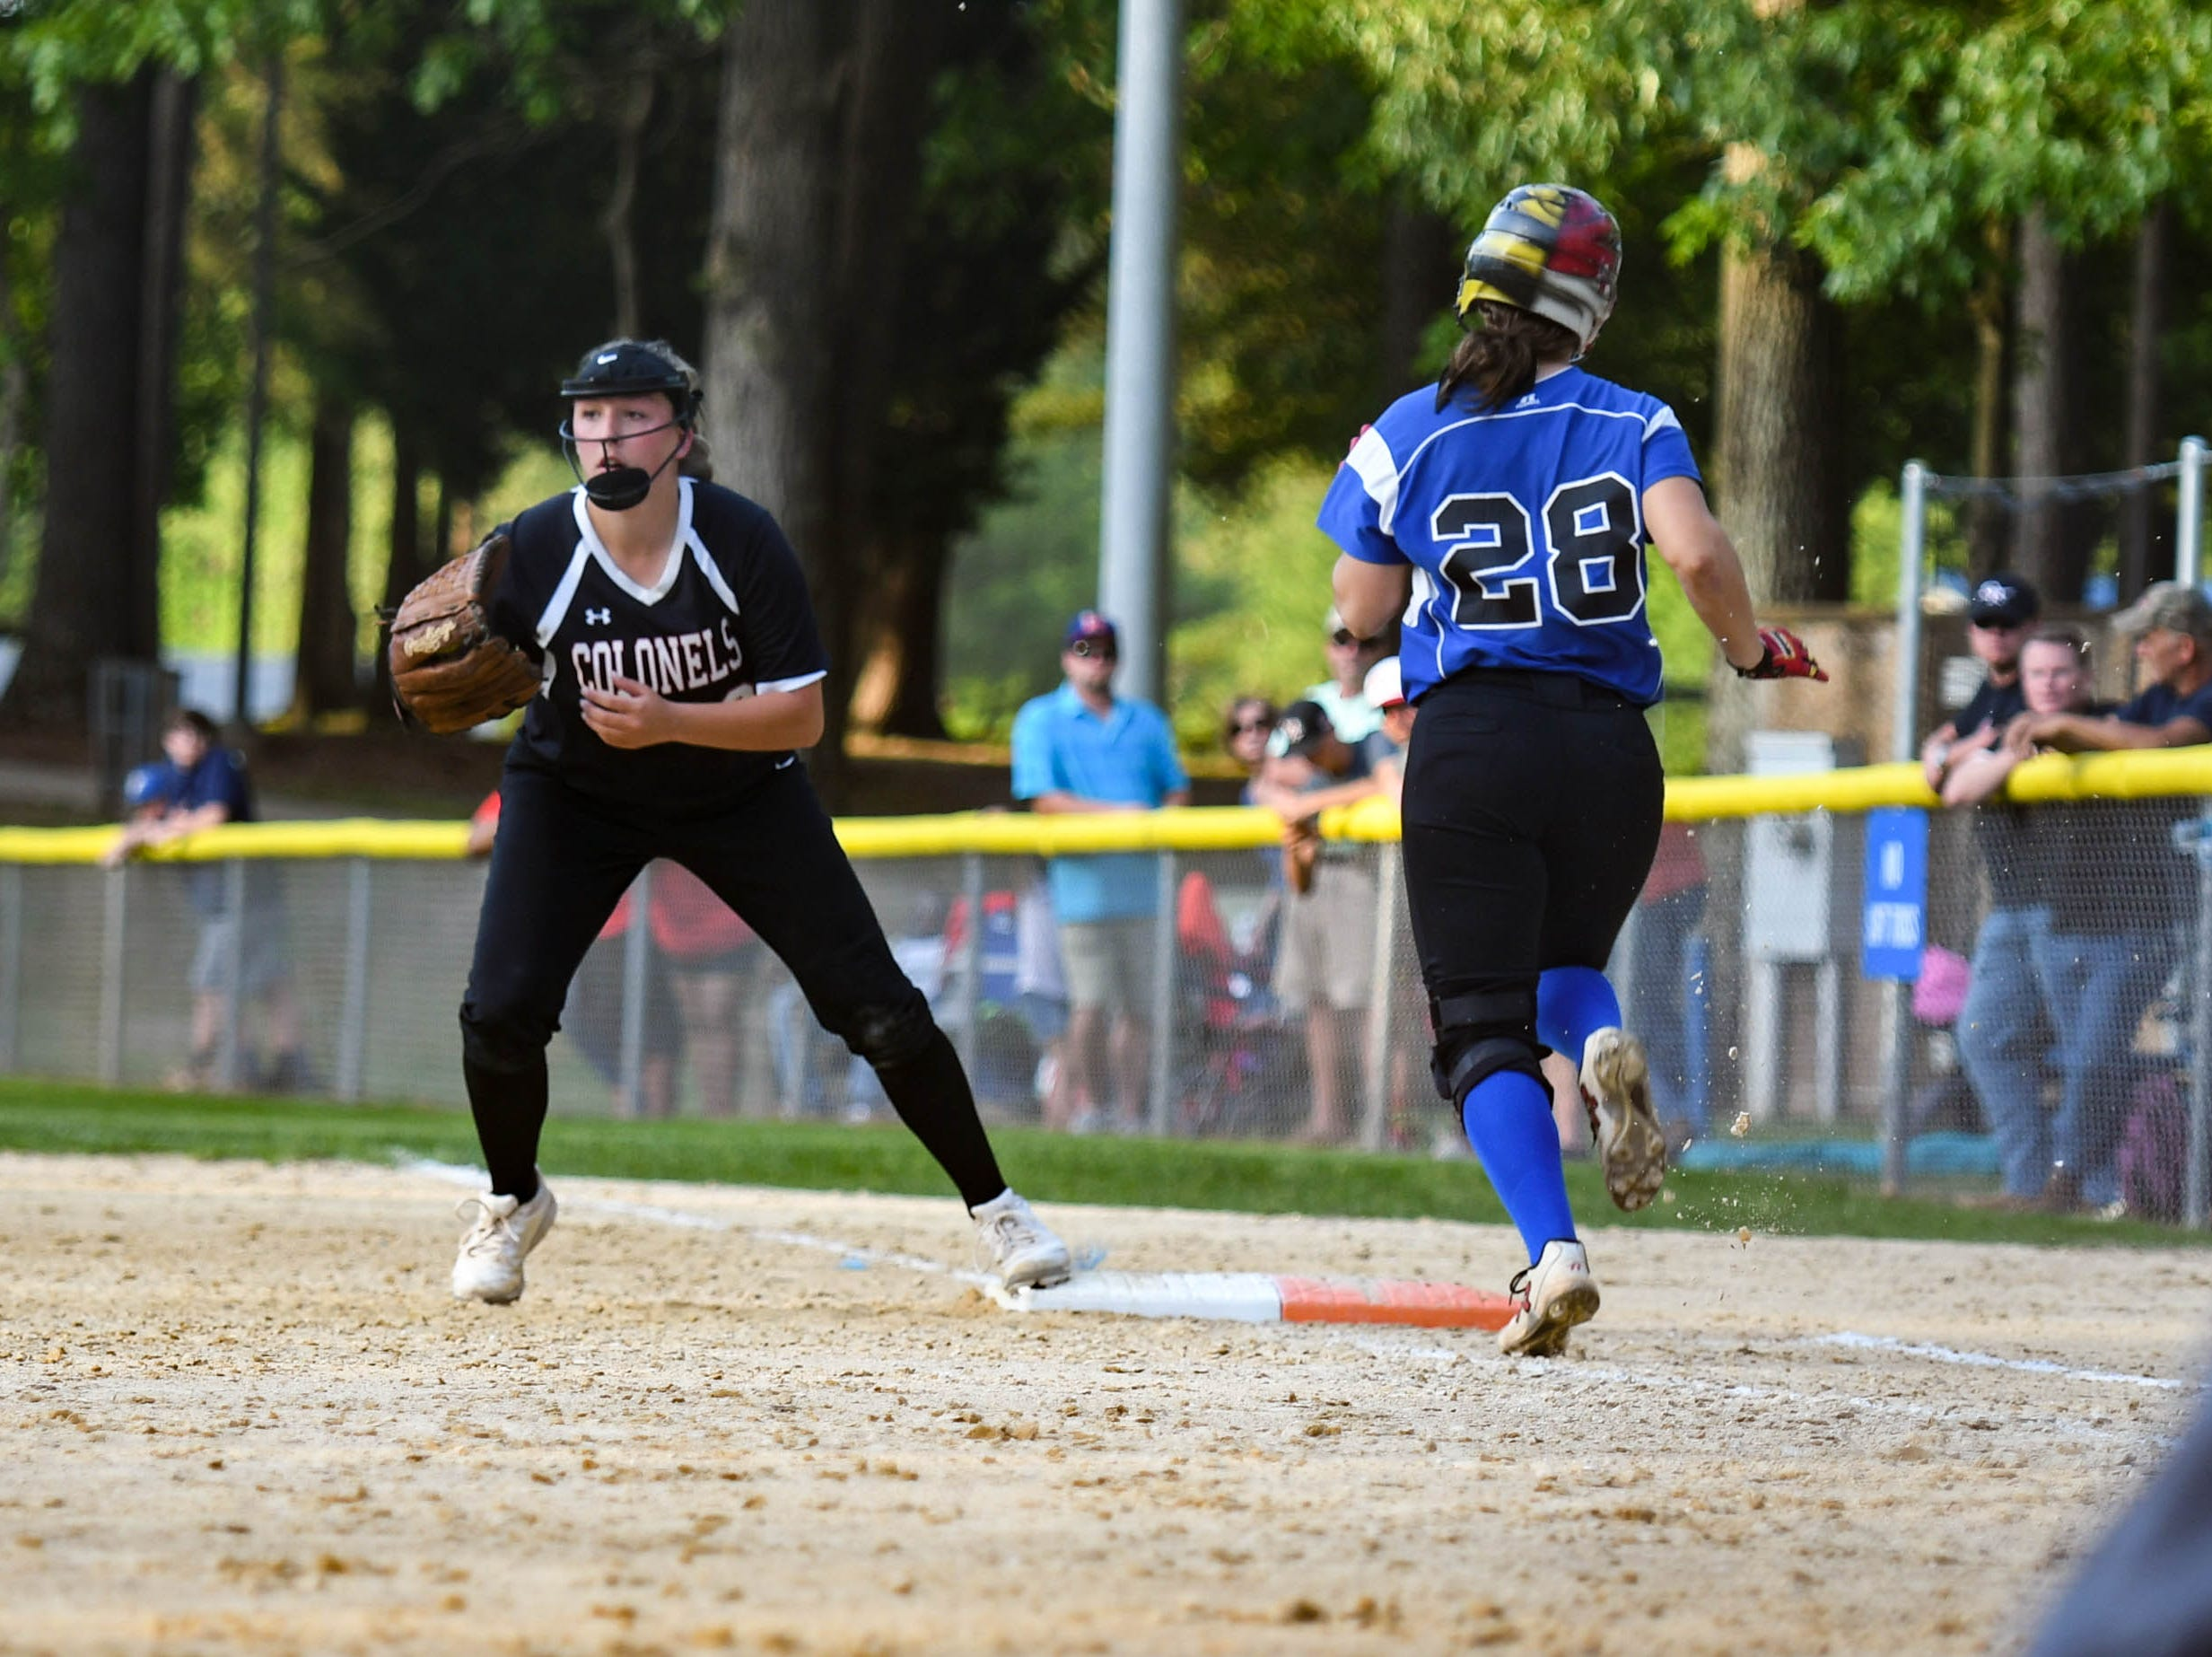 Decatur's Sierra Eisemann (28) runs for first base against Colonel Richardson in the Bayside Softball Championship game on Wednesday, May 8, 2019. Decatur prevailed with a score of 4 to 1.